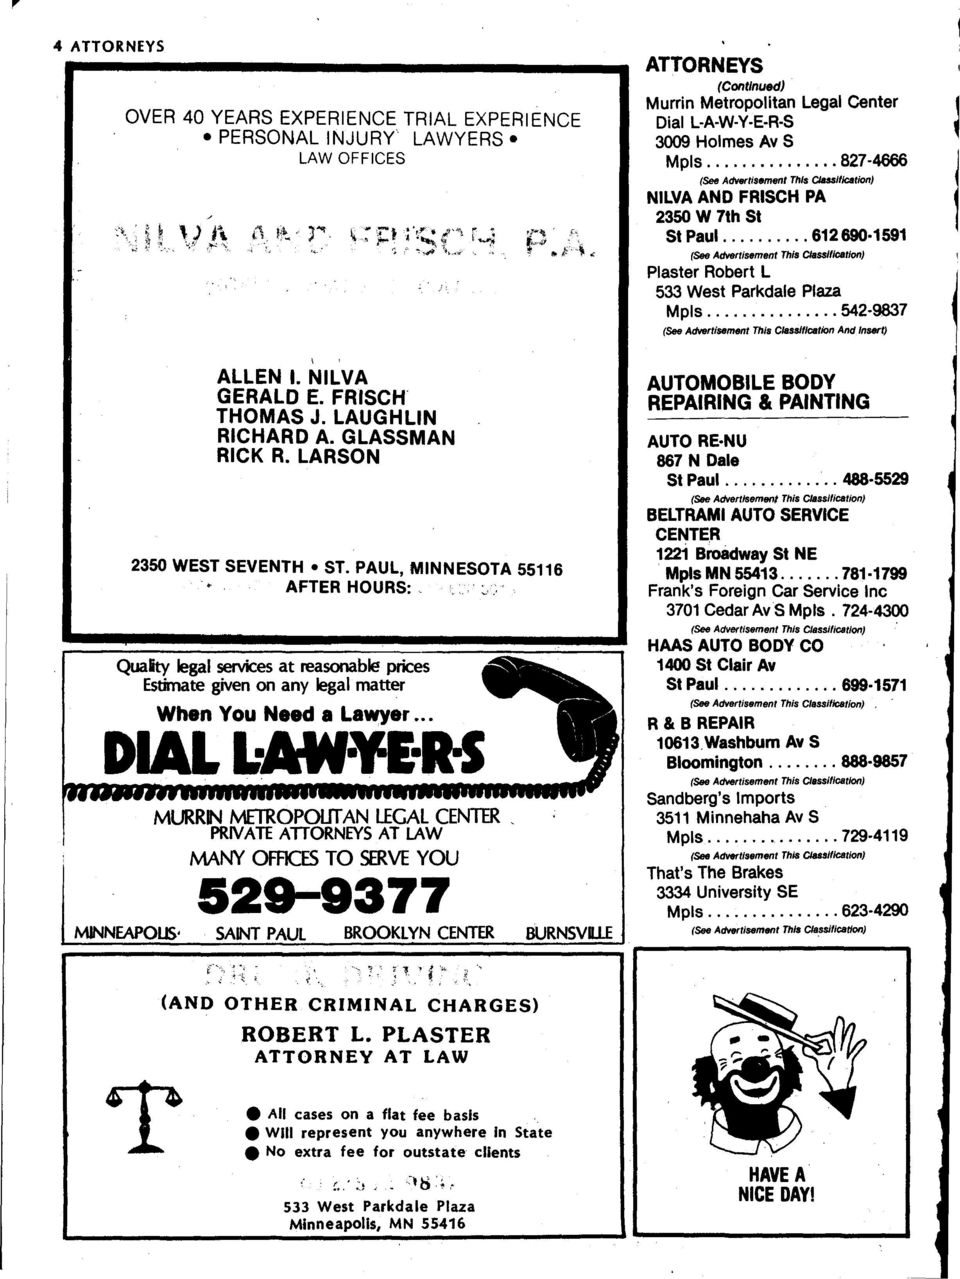 .. DAL :AW E-R-S MNNEAPOLS- MURRN METROPOUTAN LEGAL CENTER, PRVATE ATORNEYS AT LAW MANY OFFCES TO SERVE YOU 529-8377 SANT PAUL BROOKLYN CENTER BURNSVllE ATTORNEYS (Continued) Murrin Metropolitan